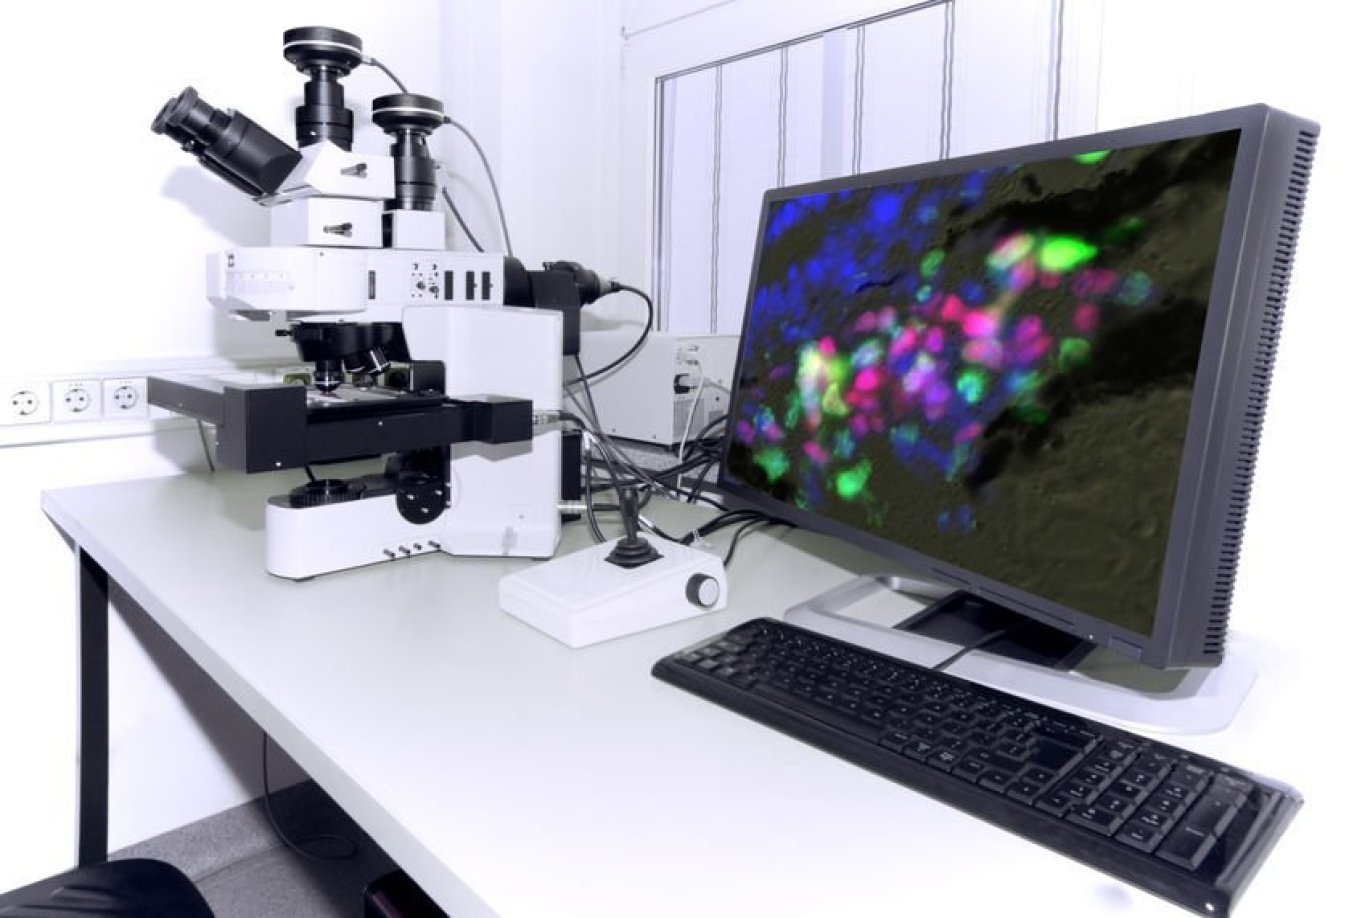 Modern microscope equipped with digital camera, computer and monitor. Antibody tests concept.